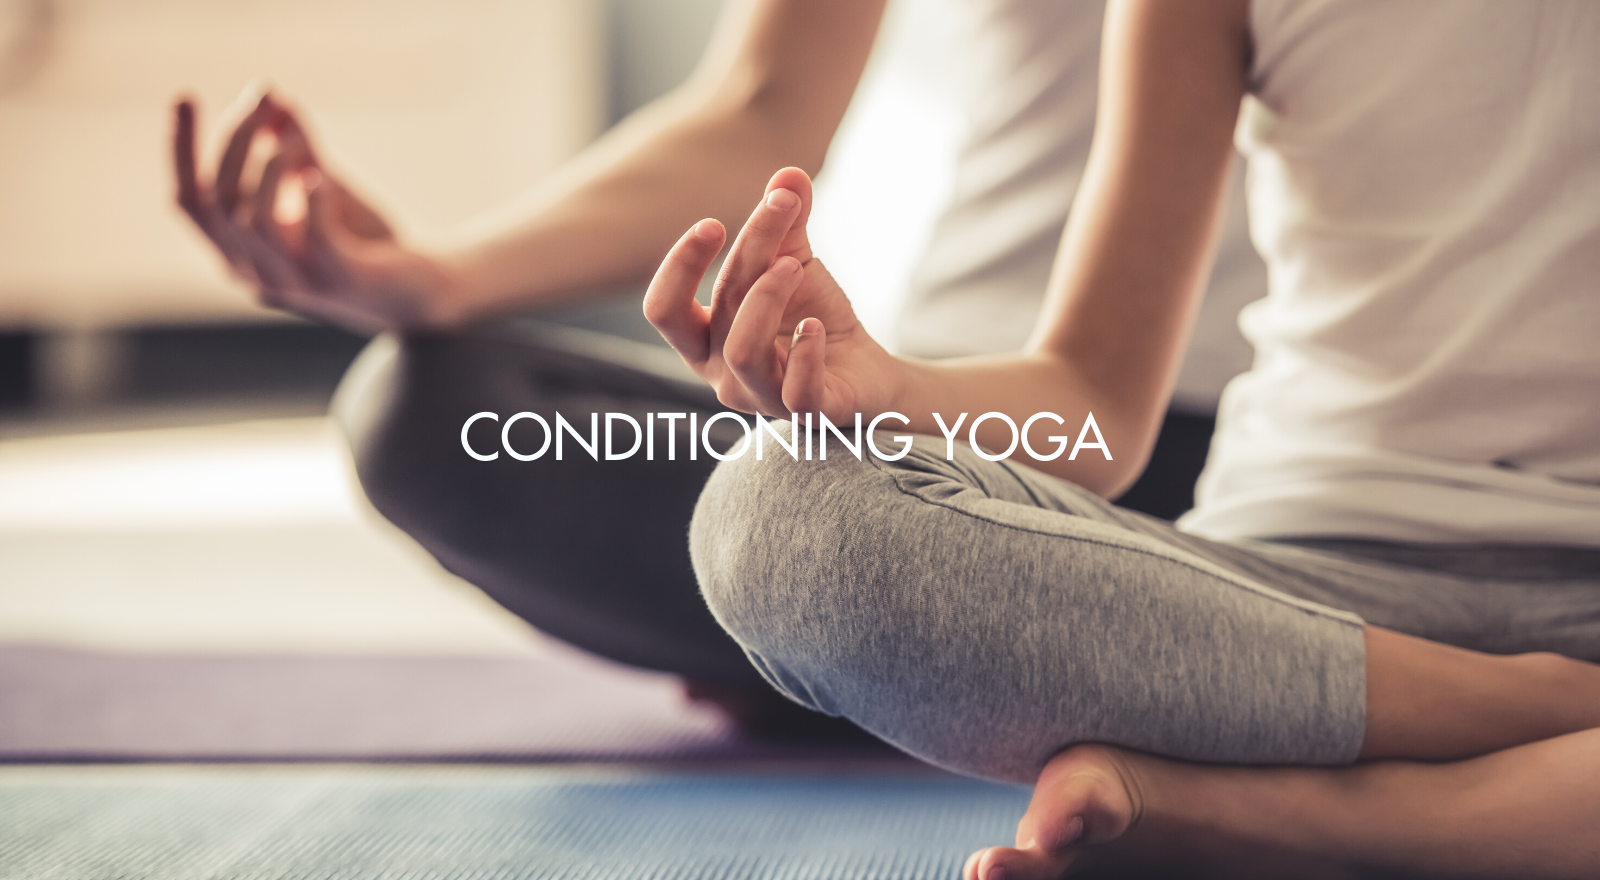 yoga, conditioning yoga, exeter golf and country club, yoga exeter, howard pike yoga